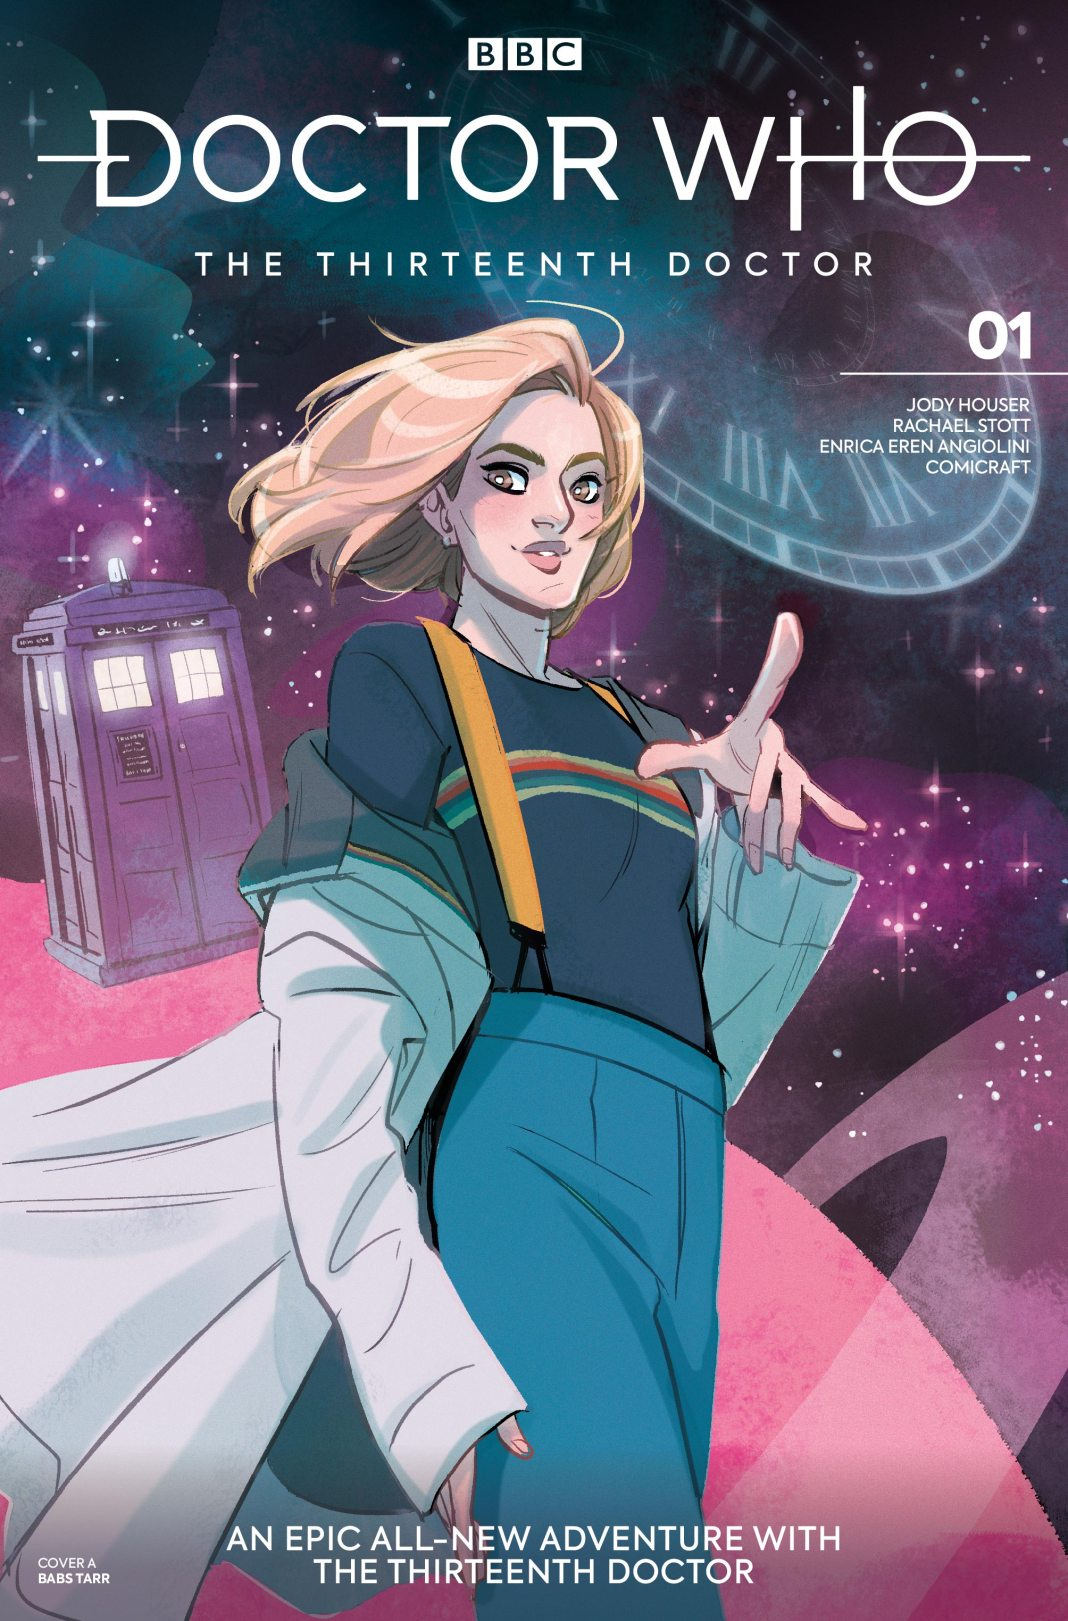 Doctor Who: Thirteenth Doctor #1 - Babs Tarr Variant